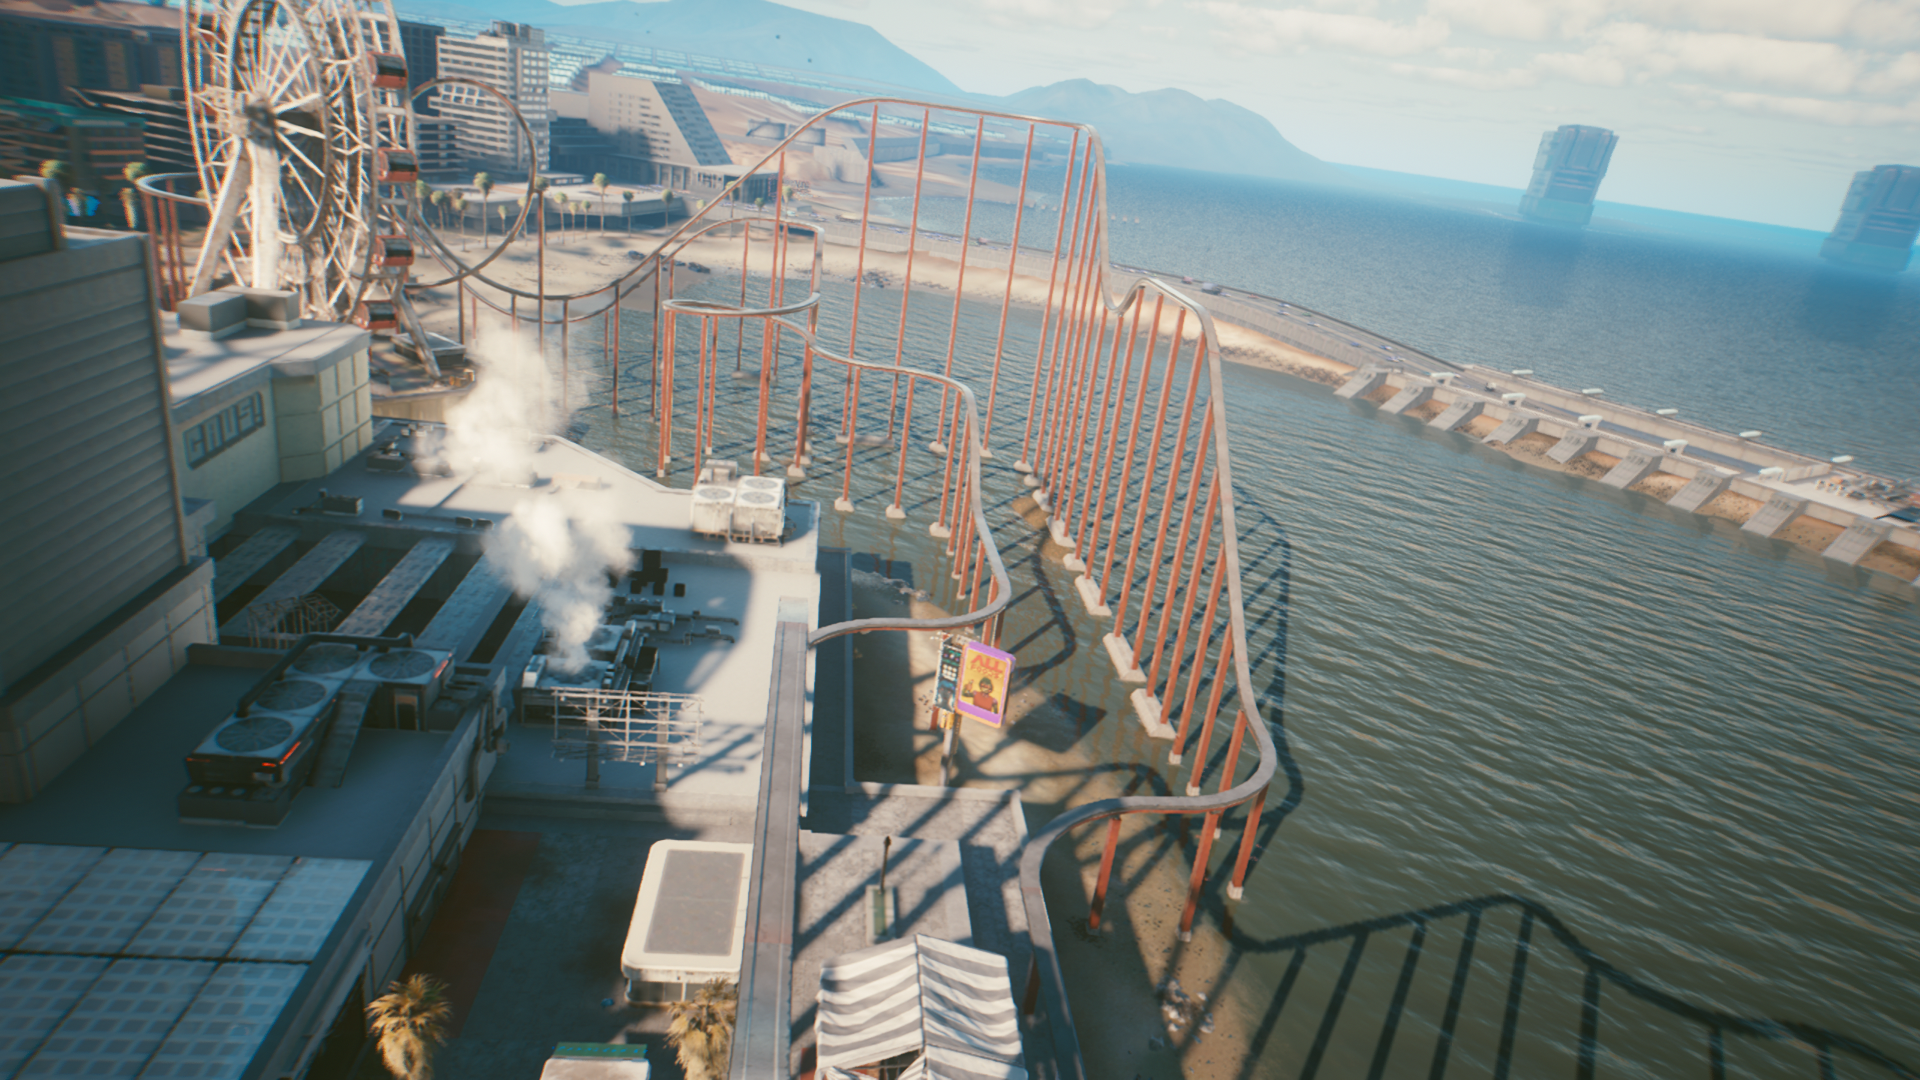 Cyberpunk 2077: Yes, You Can Ride The Rollercoaster - Here's How   Easter  Egg Guide - Gameranx